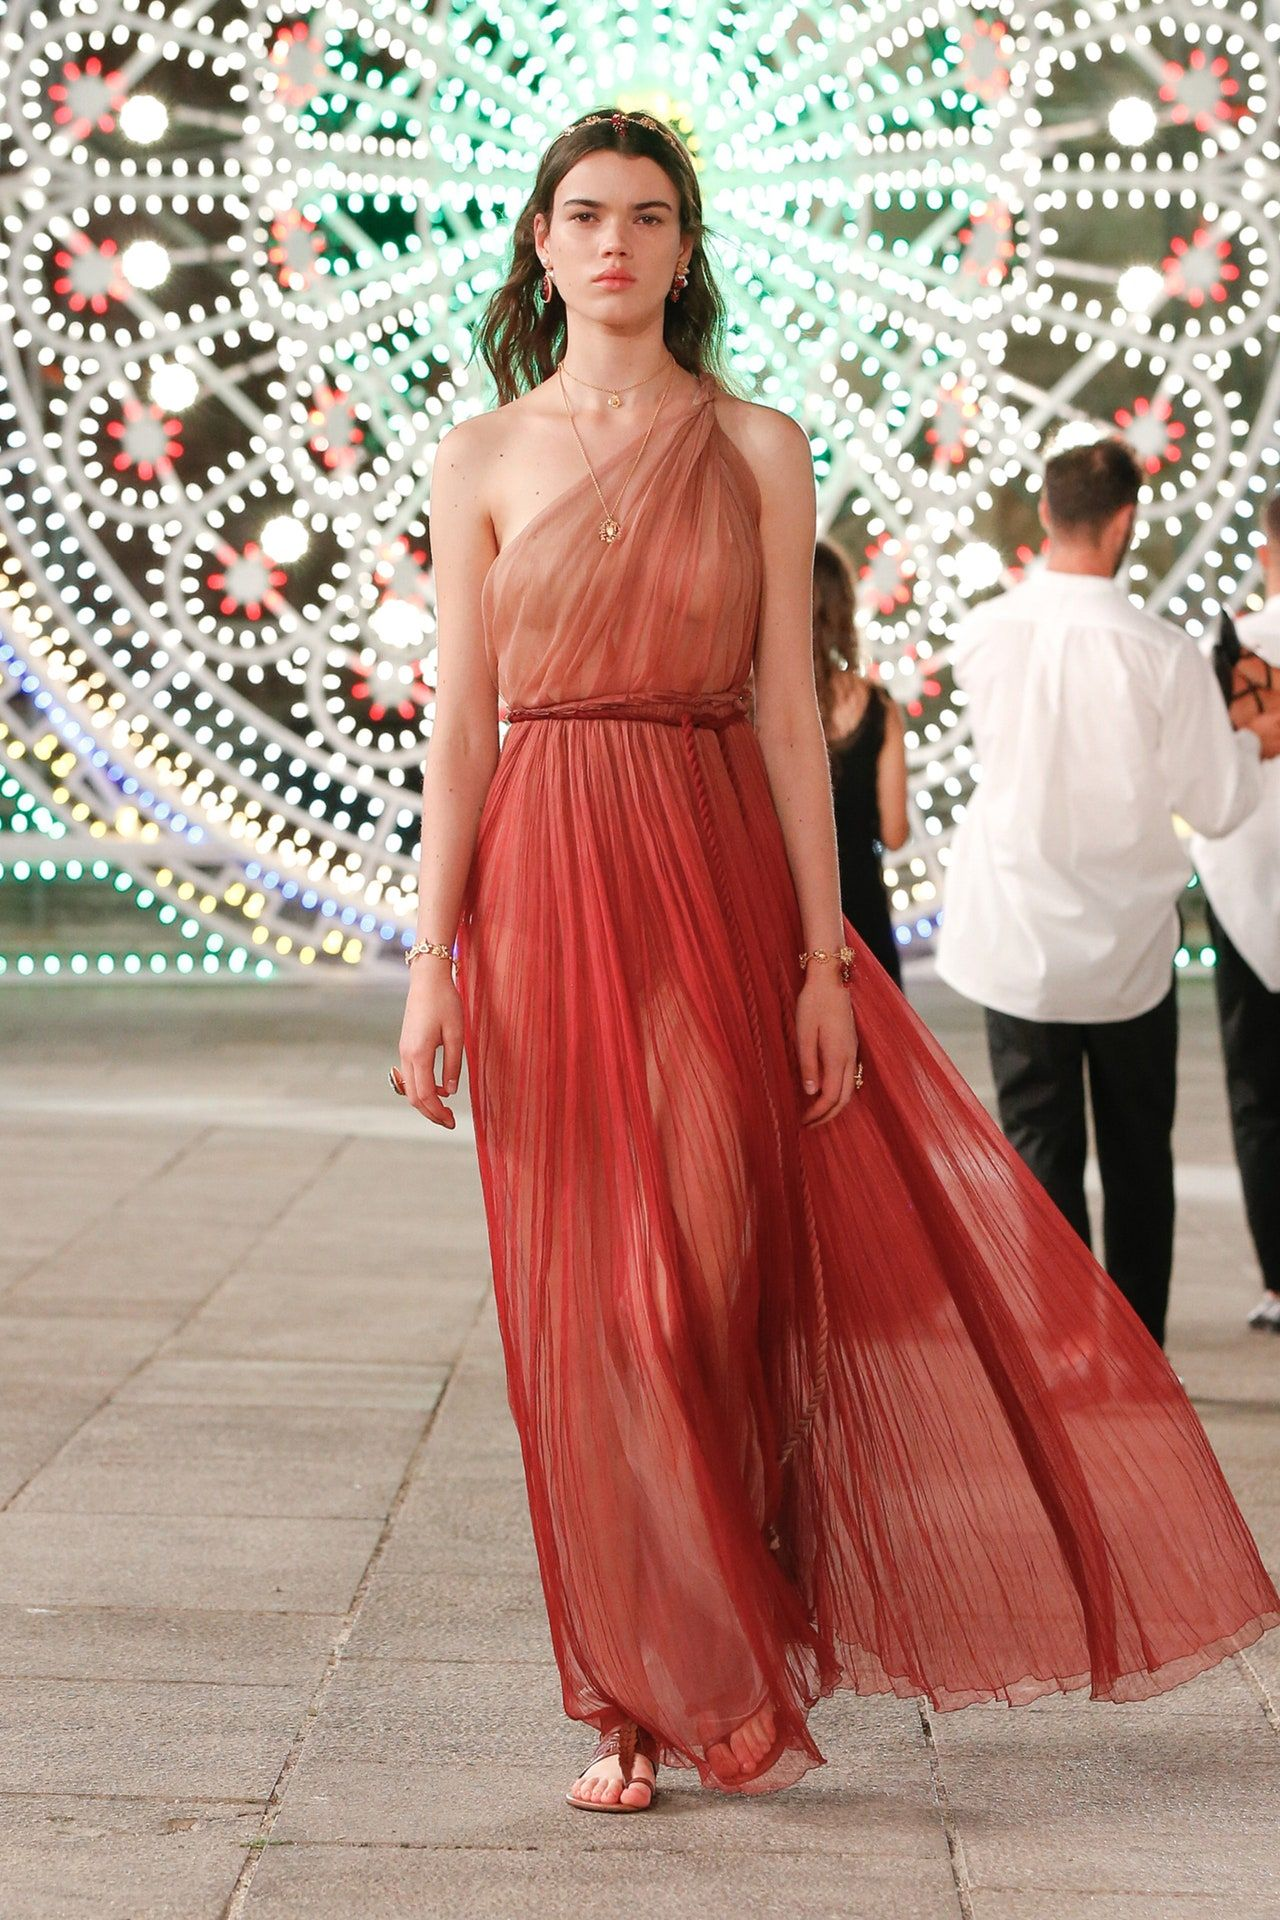 Dior Cruise 8 fashion show in Lecce, Italy (July 8, 8